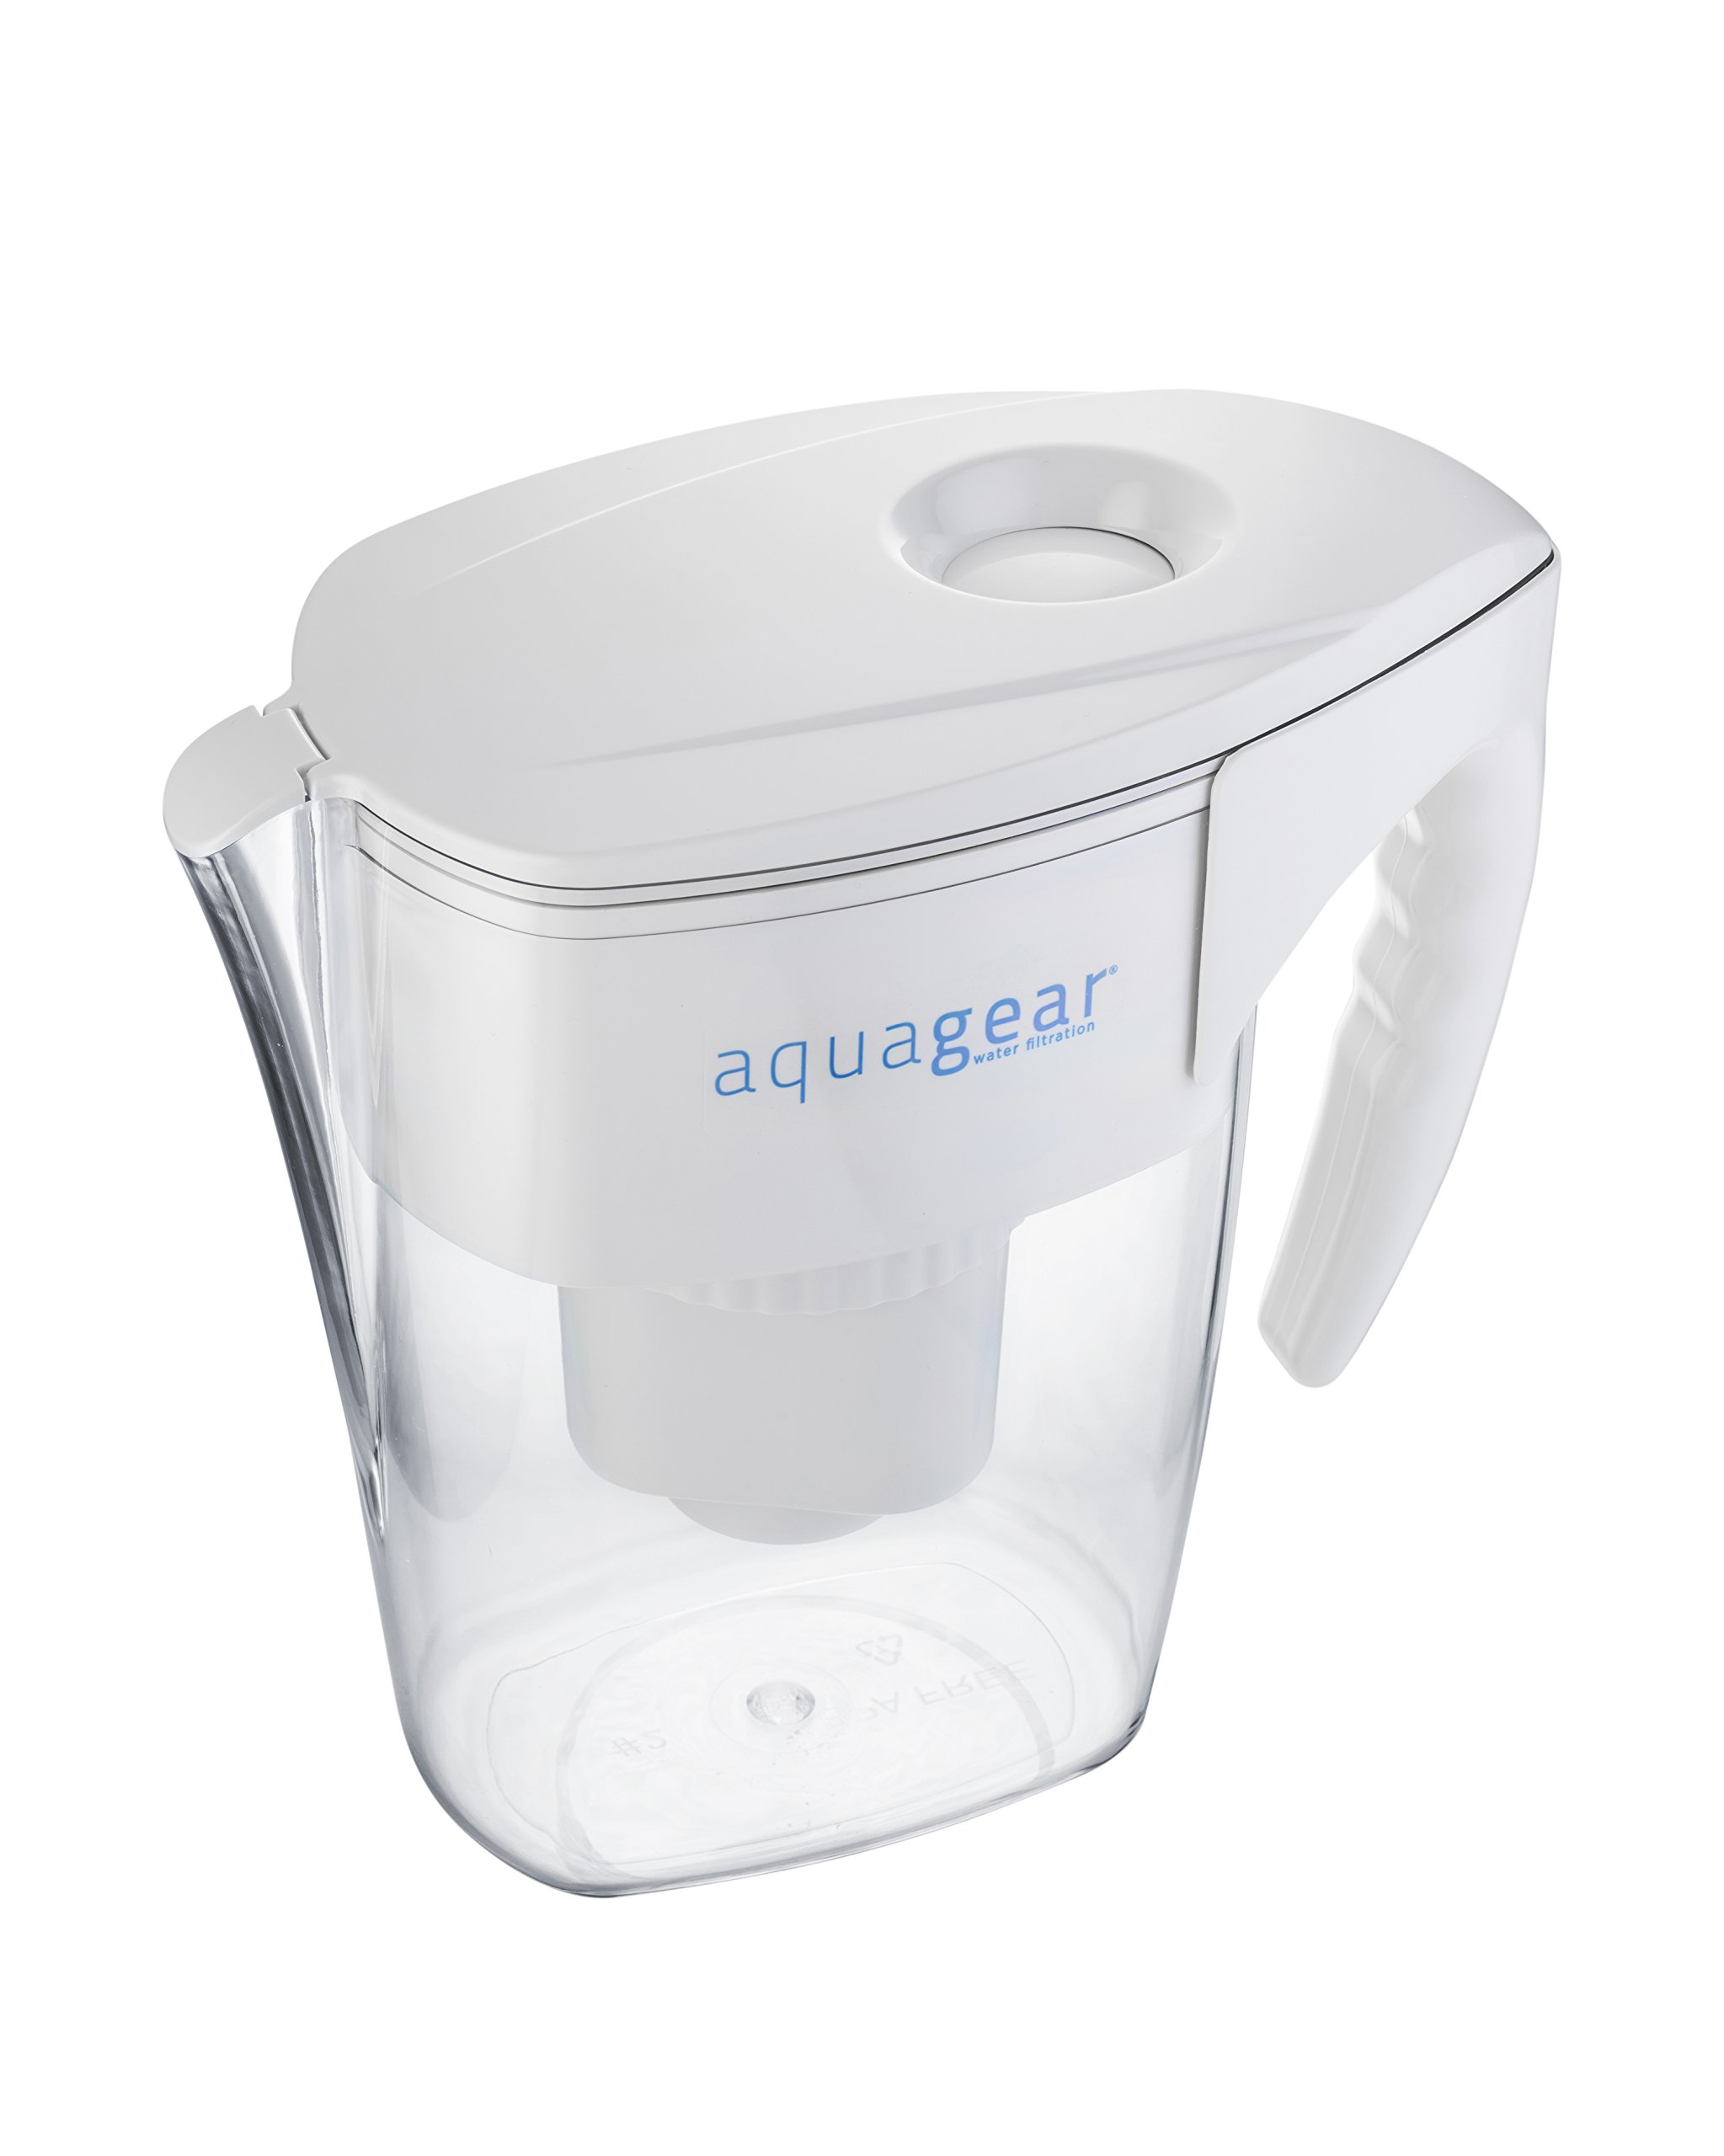 Aquagear Water Filter Pitcher - Fluoride, Lead, Chloramine, Chromium-6 Filter - BPA-Free, Clear by Aquagear (Image #2)